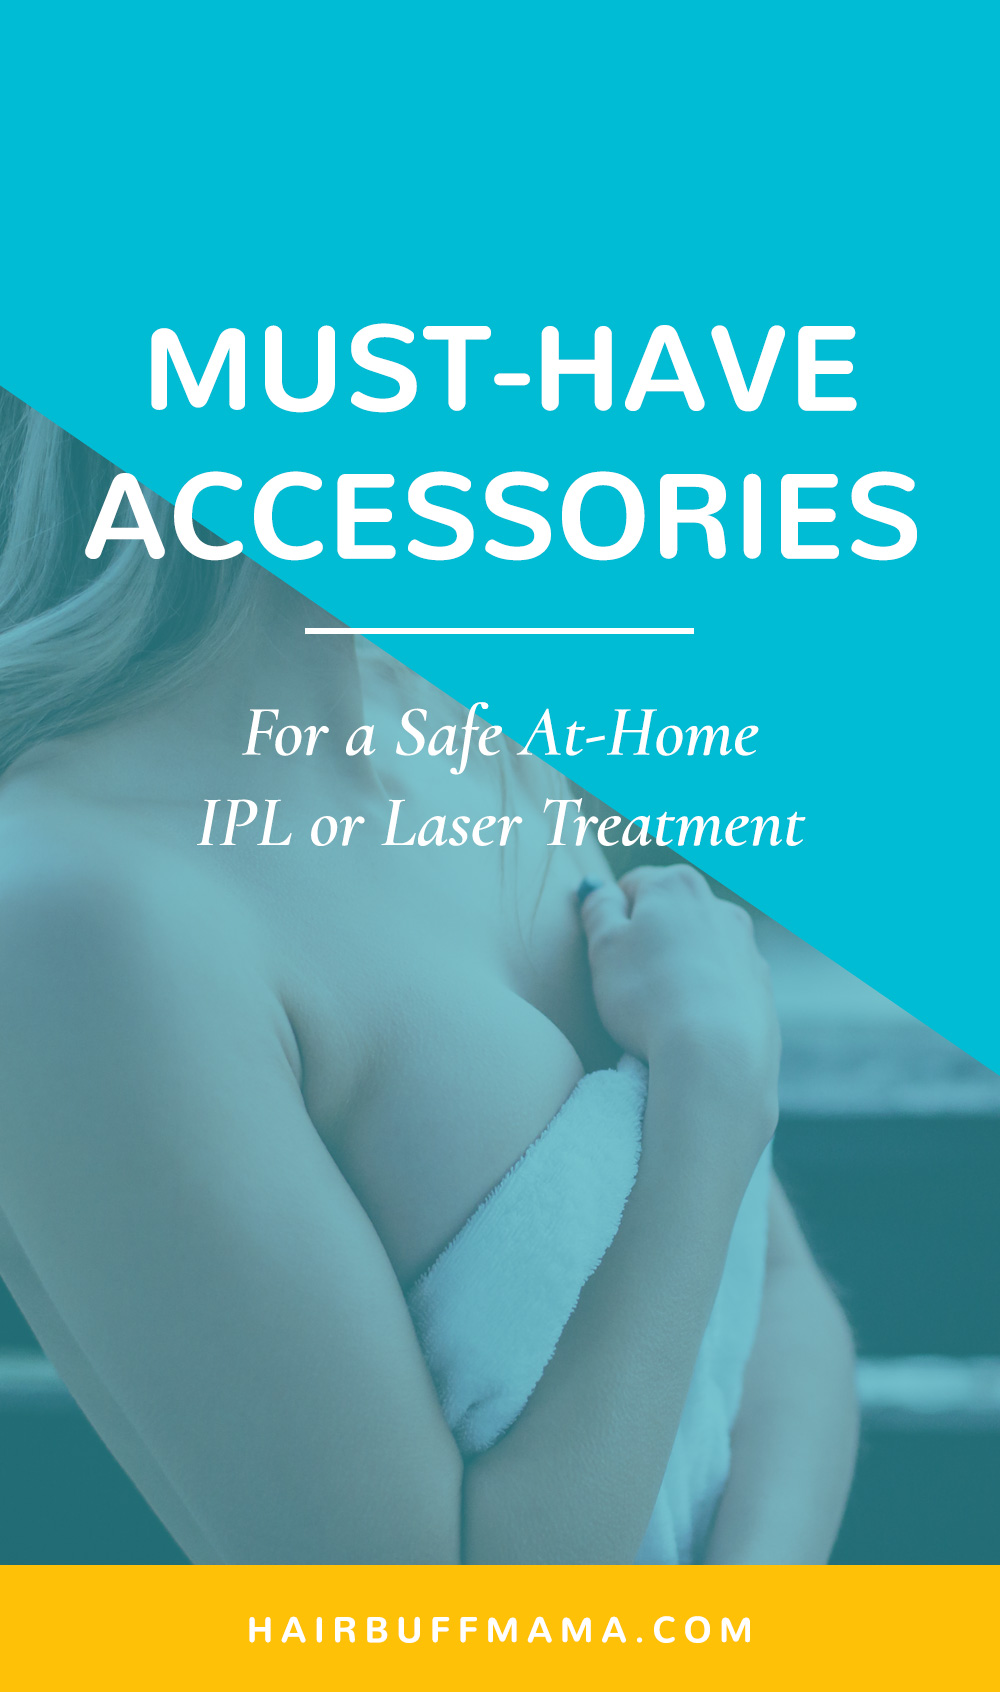 Essentials For a Safer IPL or Laser Treatment